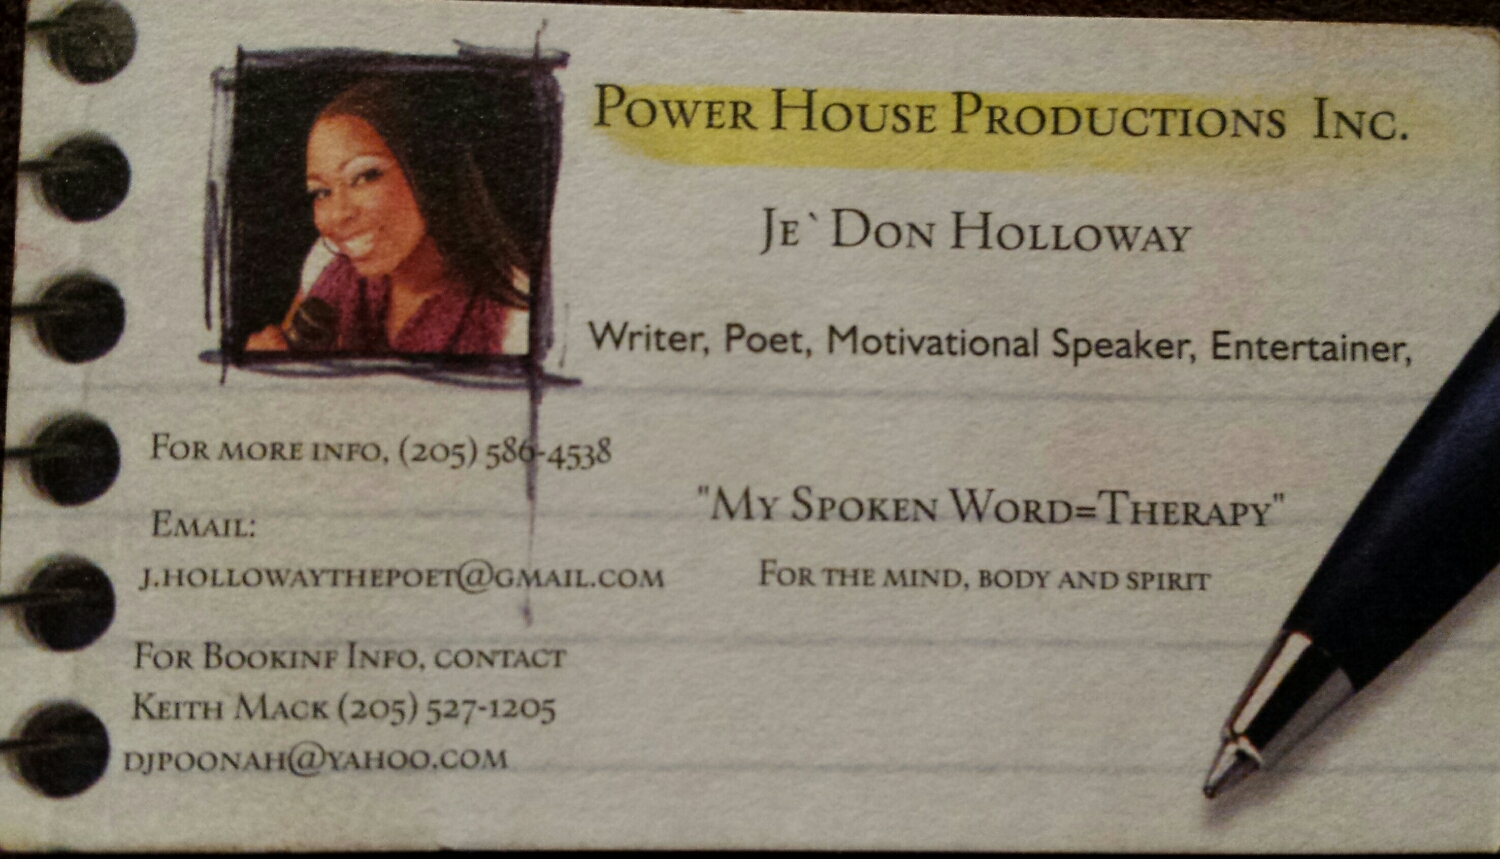 This is my very first business card! :) It's funny that my hubby came across this stray (&I haven't seen one of these cards in years) this week, the same day I got my new reworked business cards!